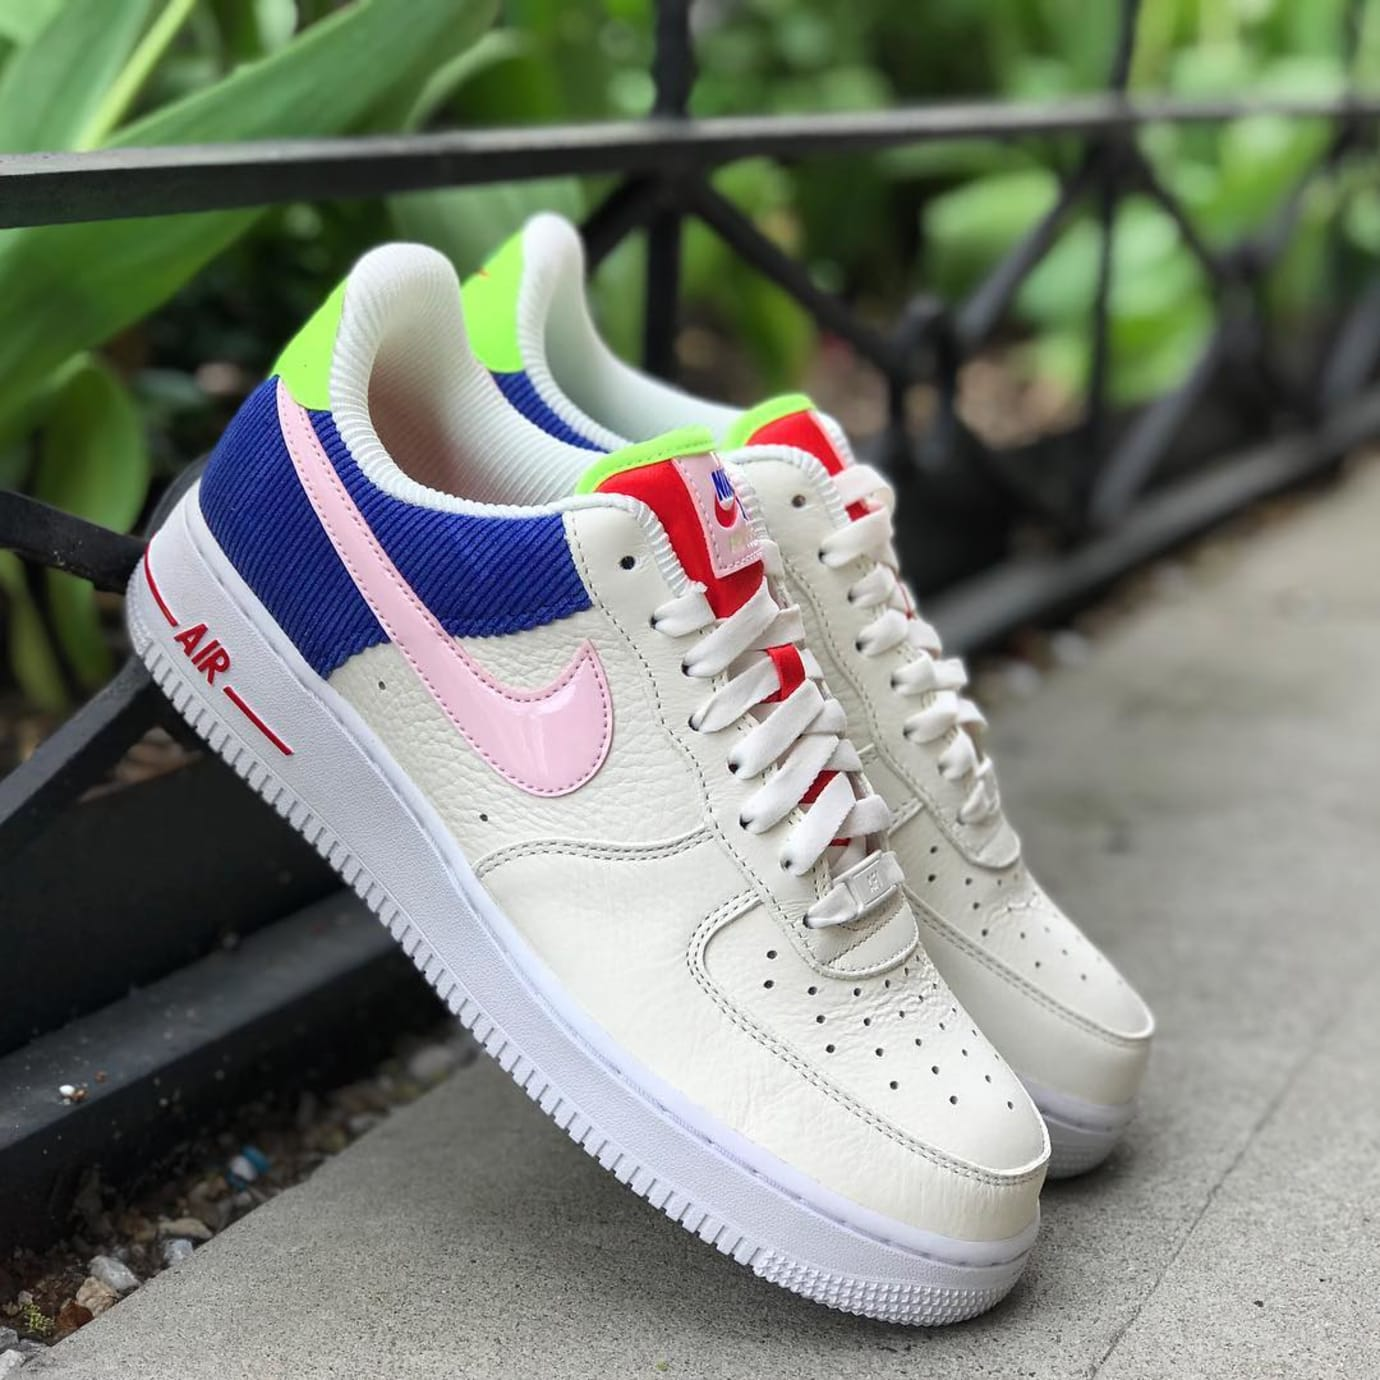 4b18319243e4 Image via Atmos Nike Air Force 1 Low SE AQ4139-101  Panache  (Pair)